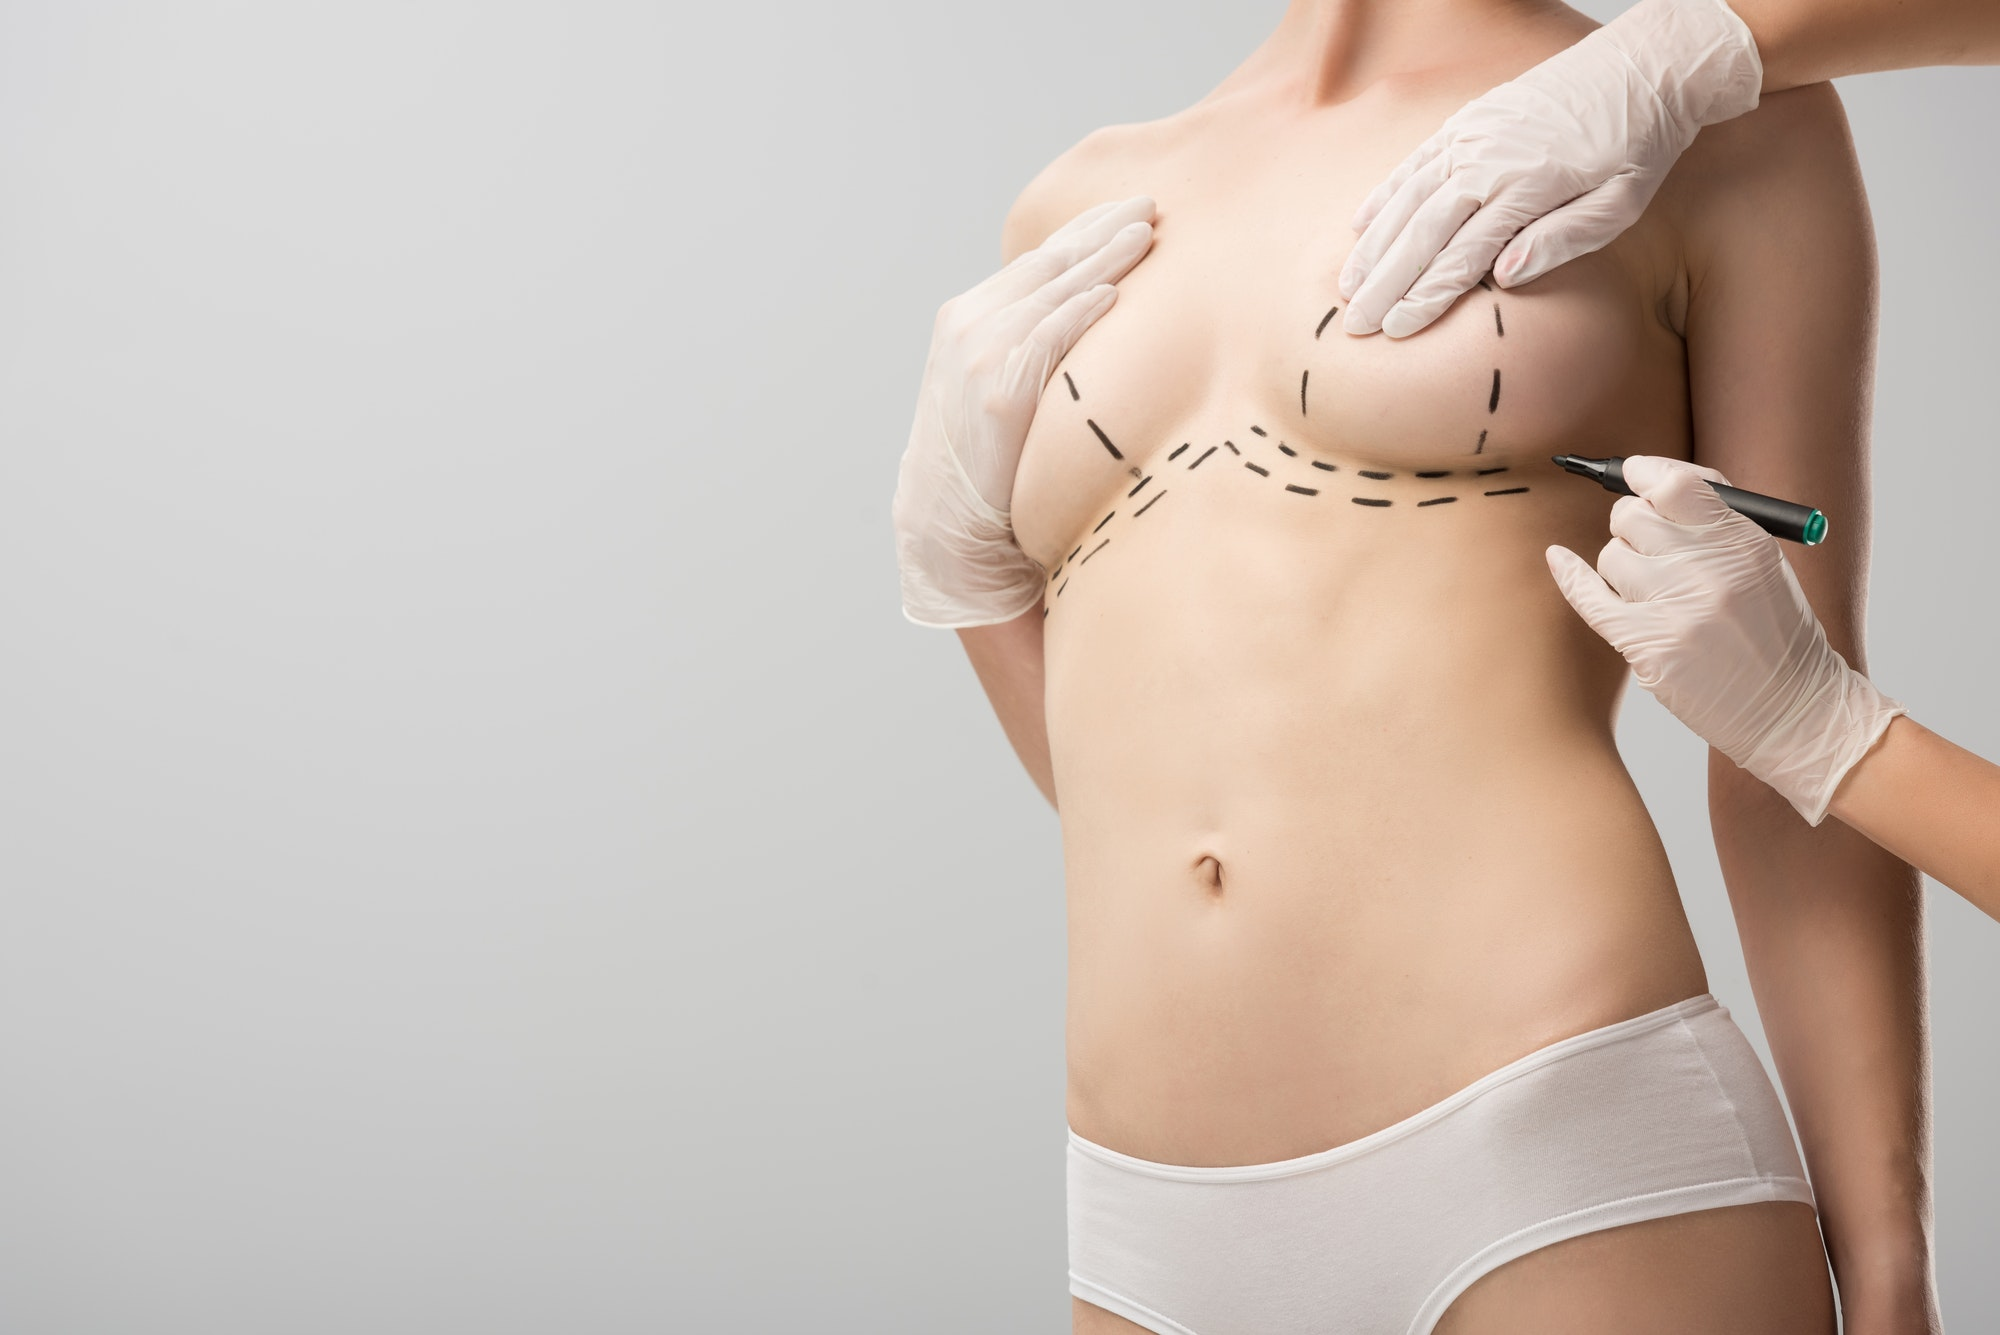 cropped view of plastic surgeon in latex gloves making marks on breast isolated on grey